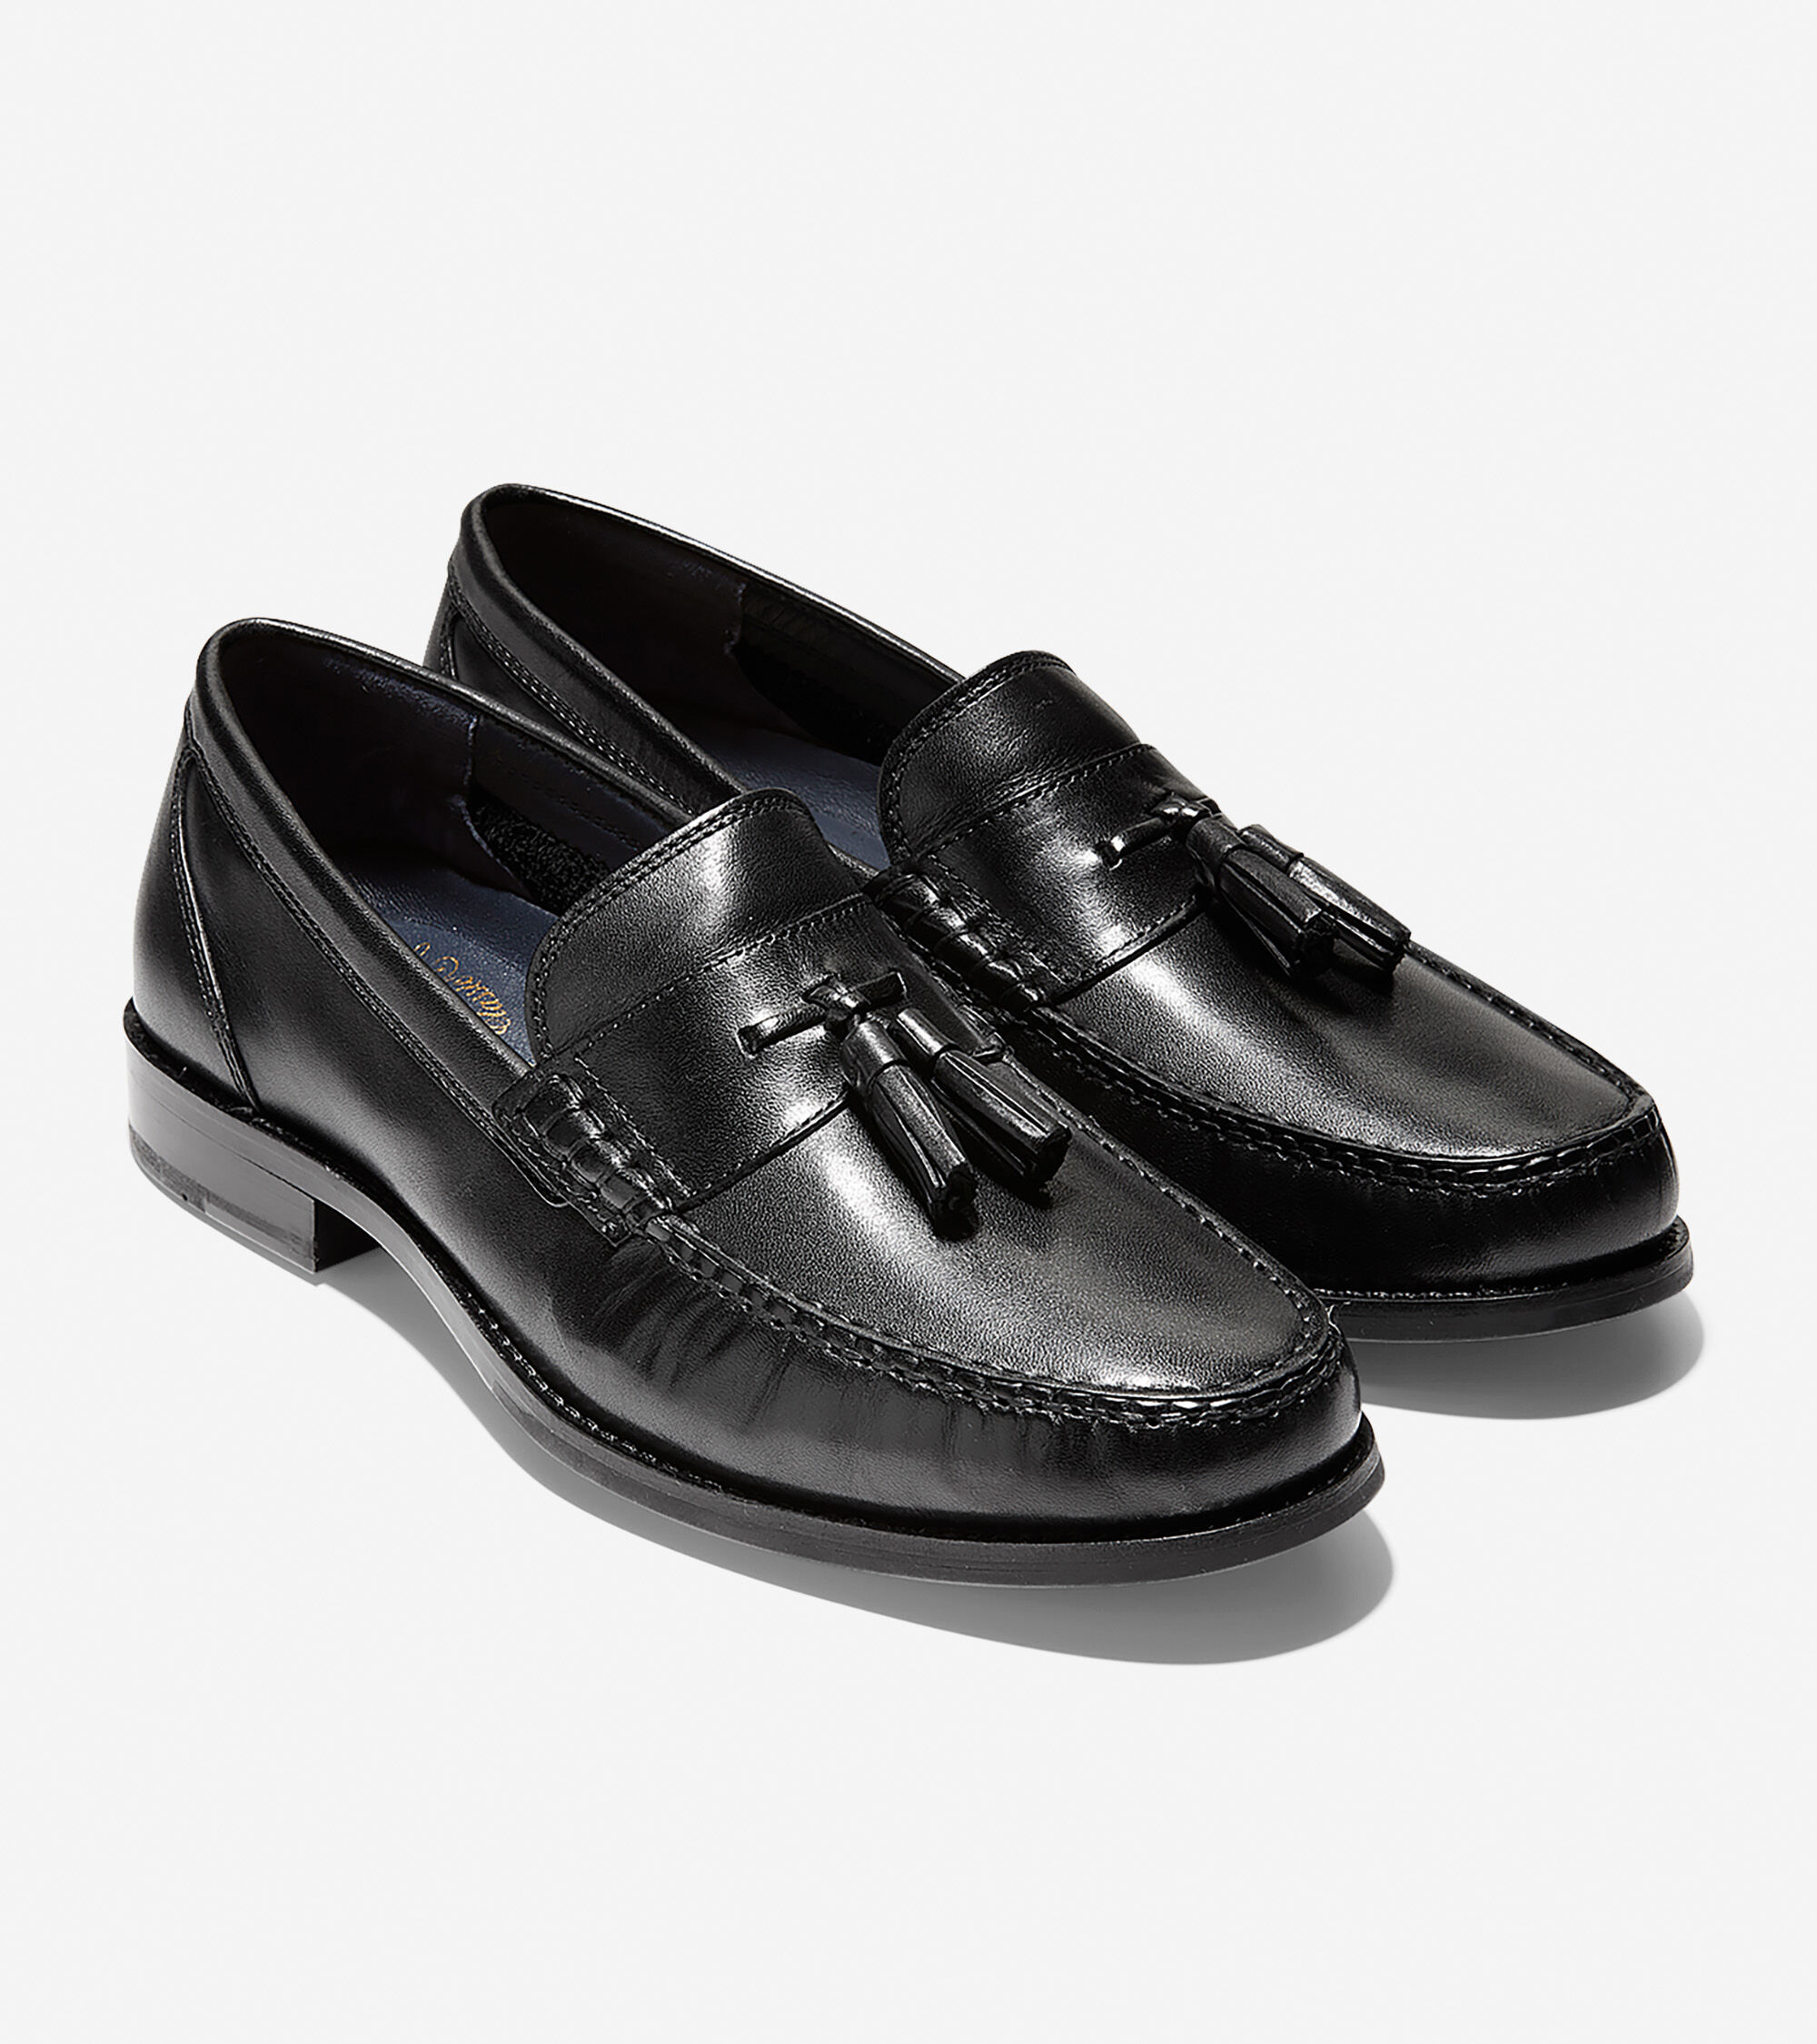 85d6298941c Men s Pinch Grand Classic Tassel Loafers in Black